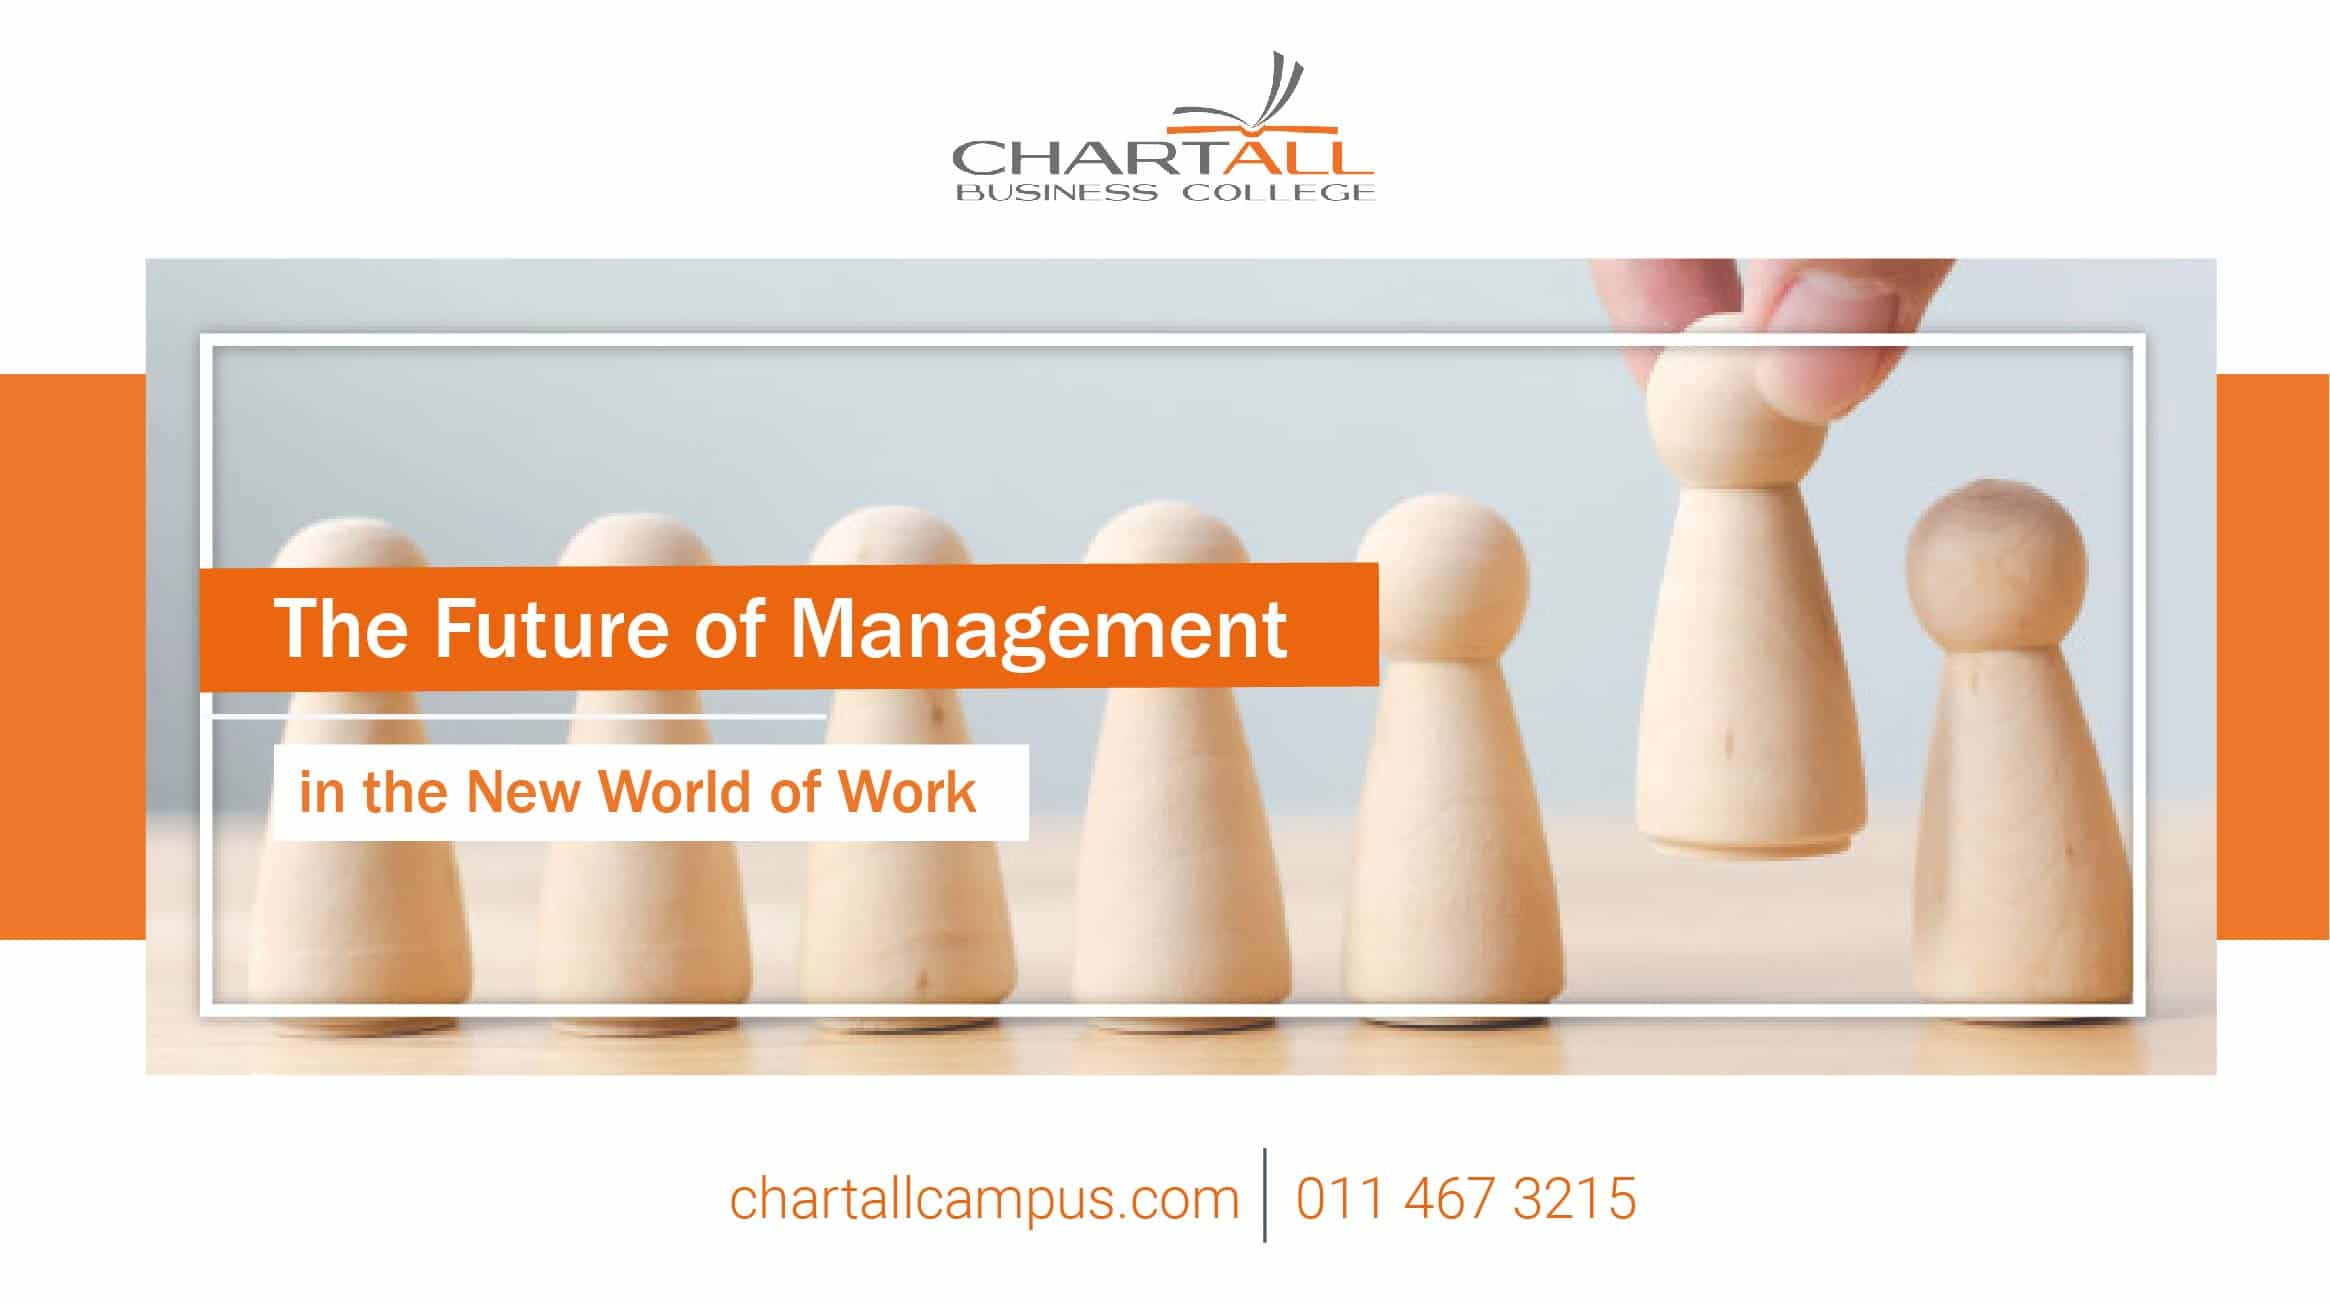 What is the future of management in the new world of work?